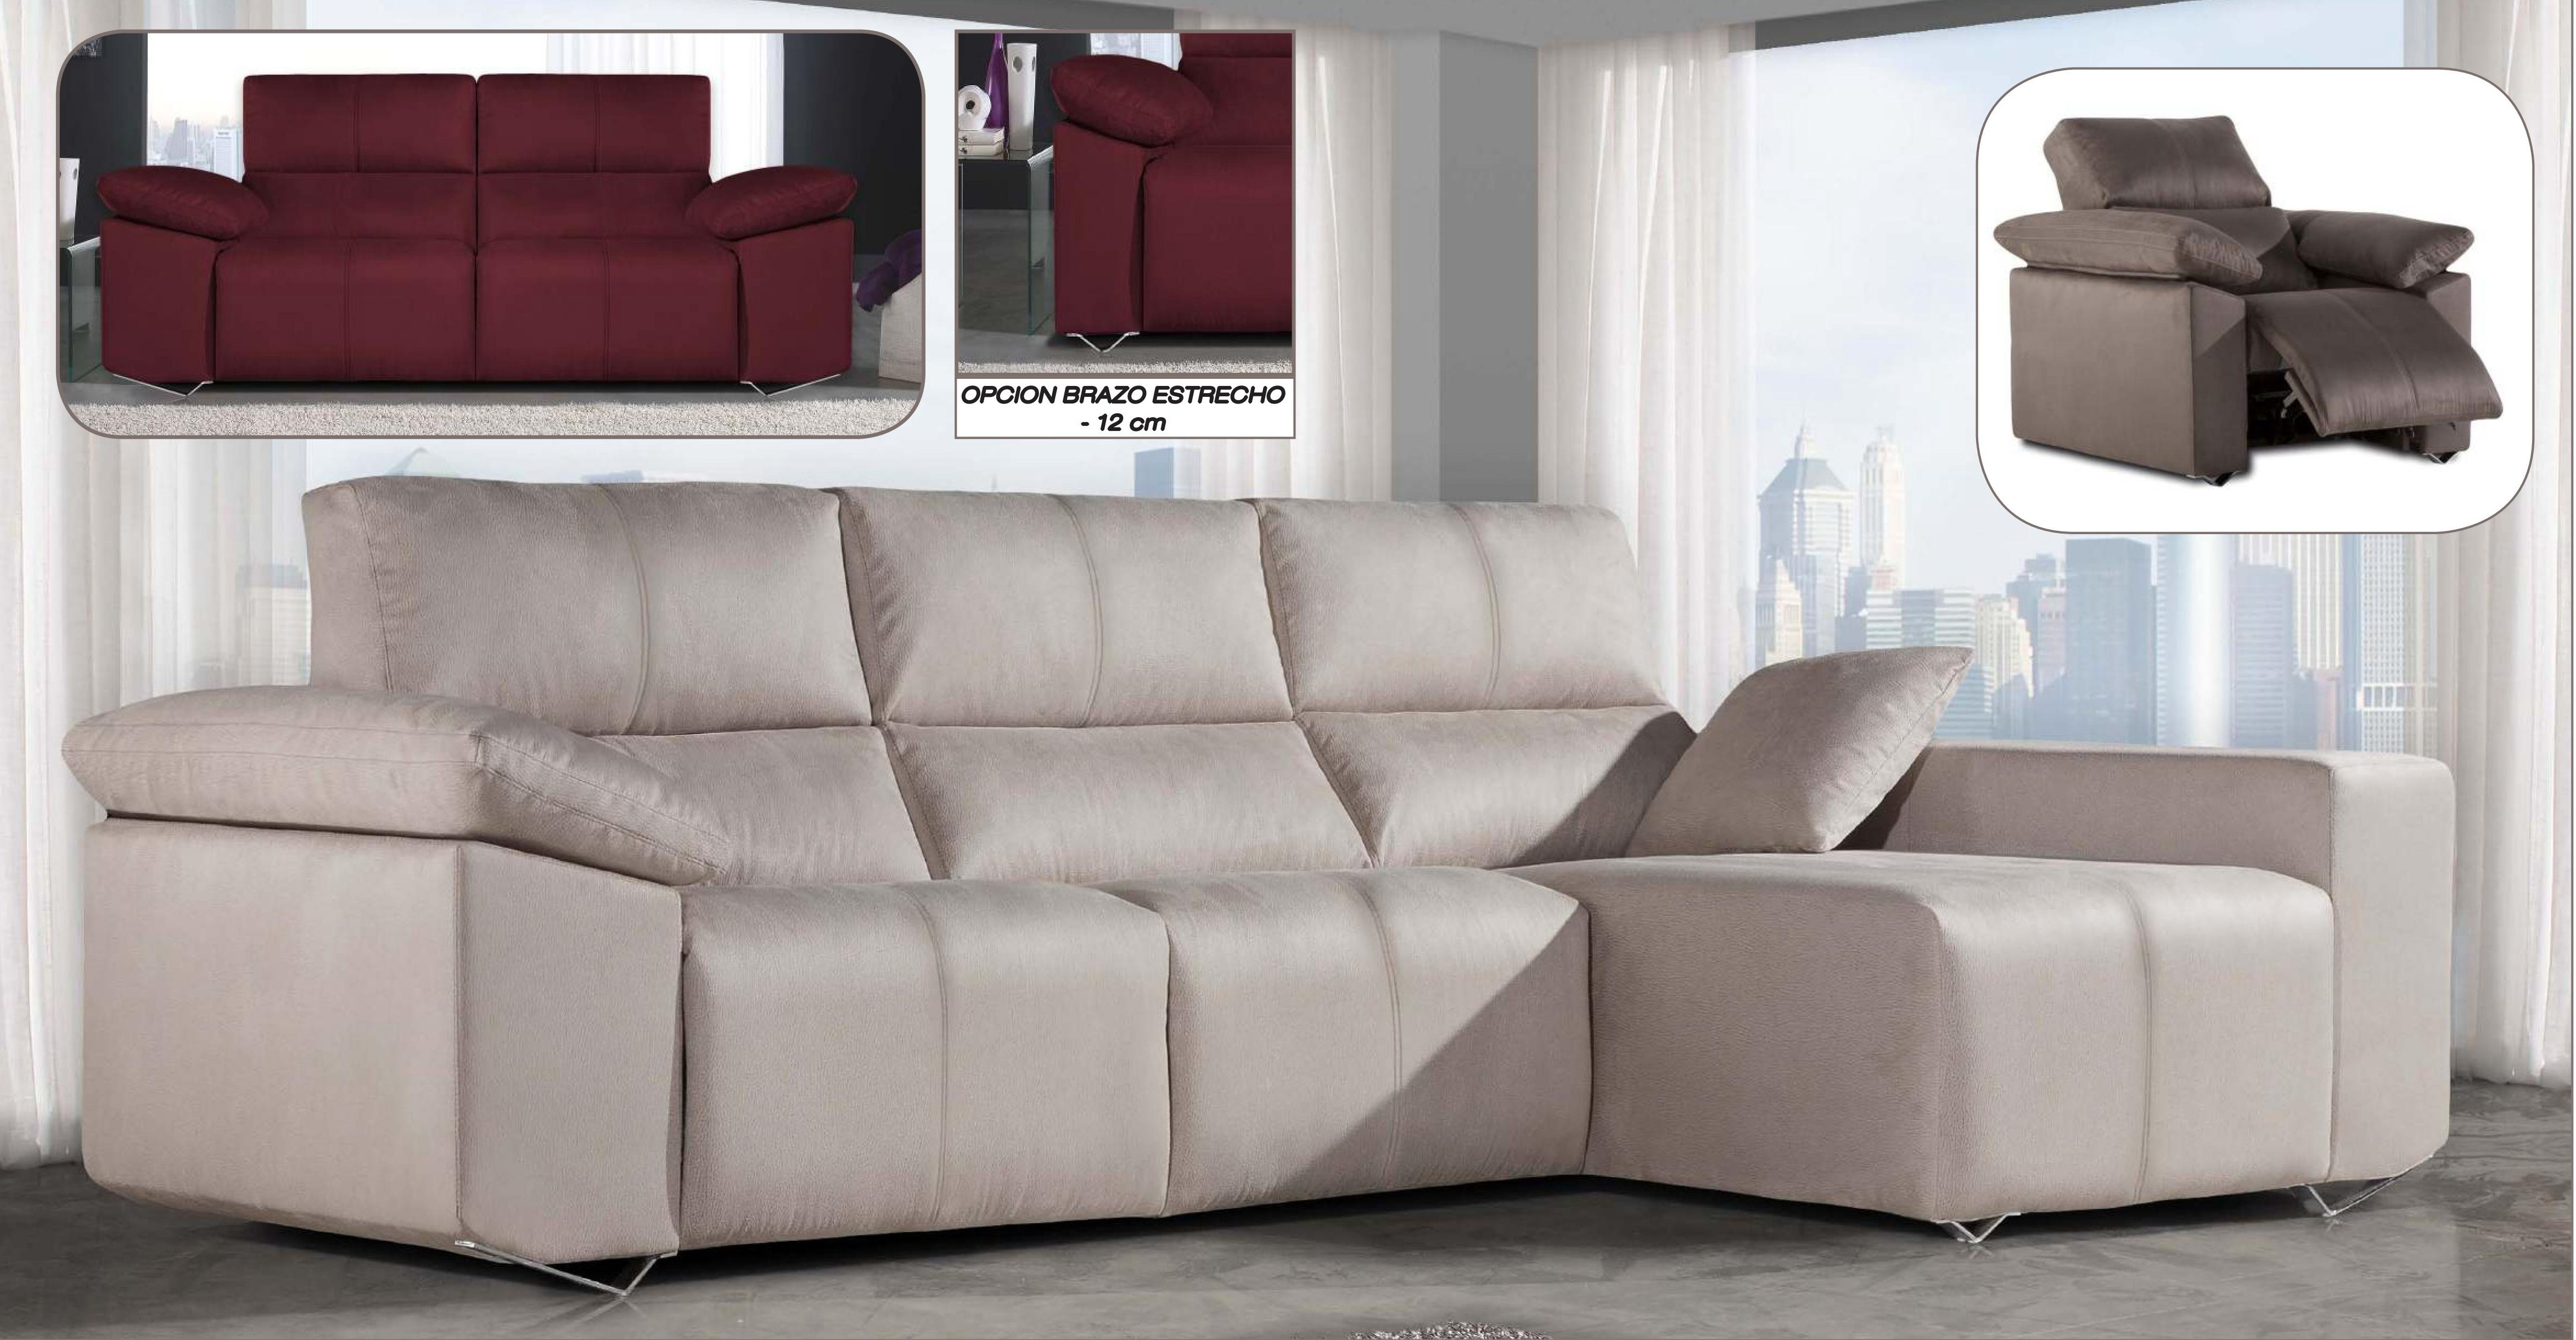 Sofa 3 plazas relax motor chaise longue moderno mobles for Sillones chaise longue